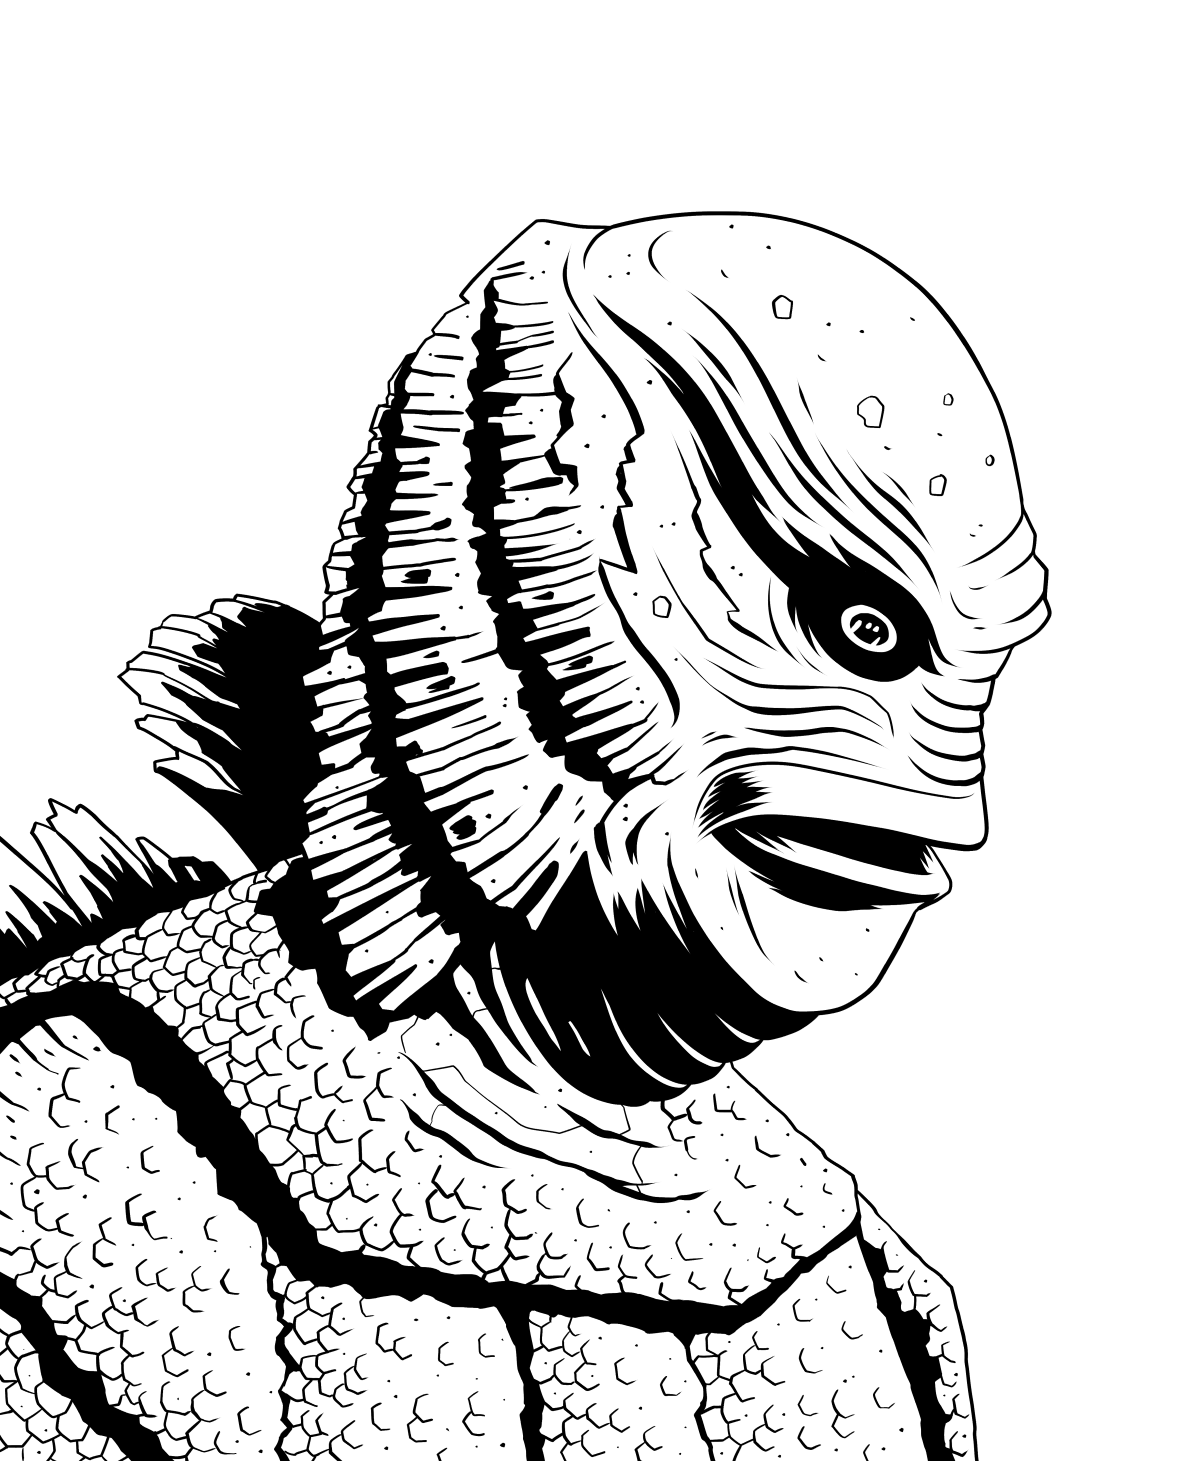 Creature from the black lagoon clipart picture black and white library Ian Jepson — Inktober day 5: Creature from the Black Lagoon! picture black and white library